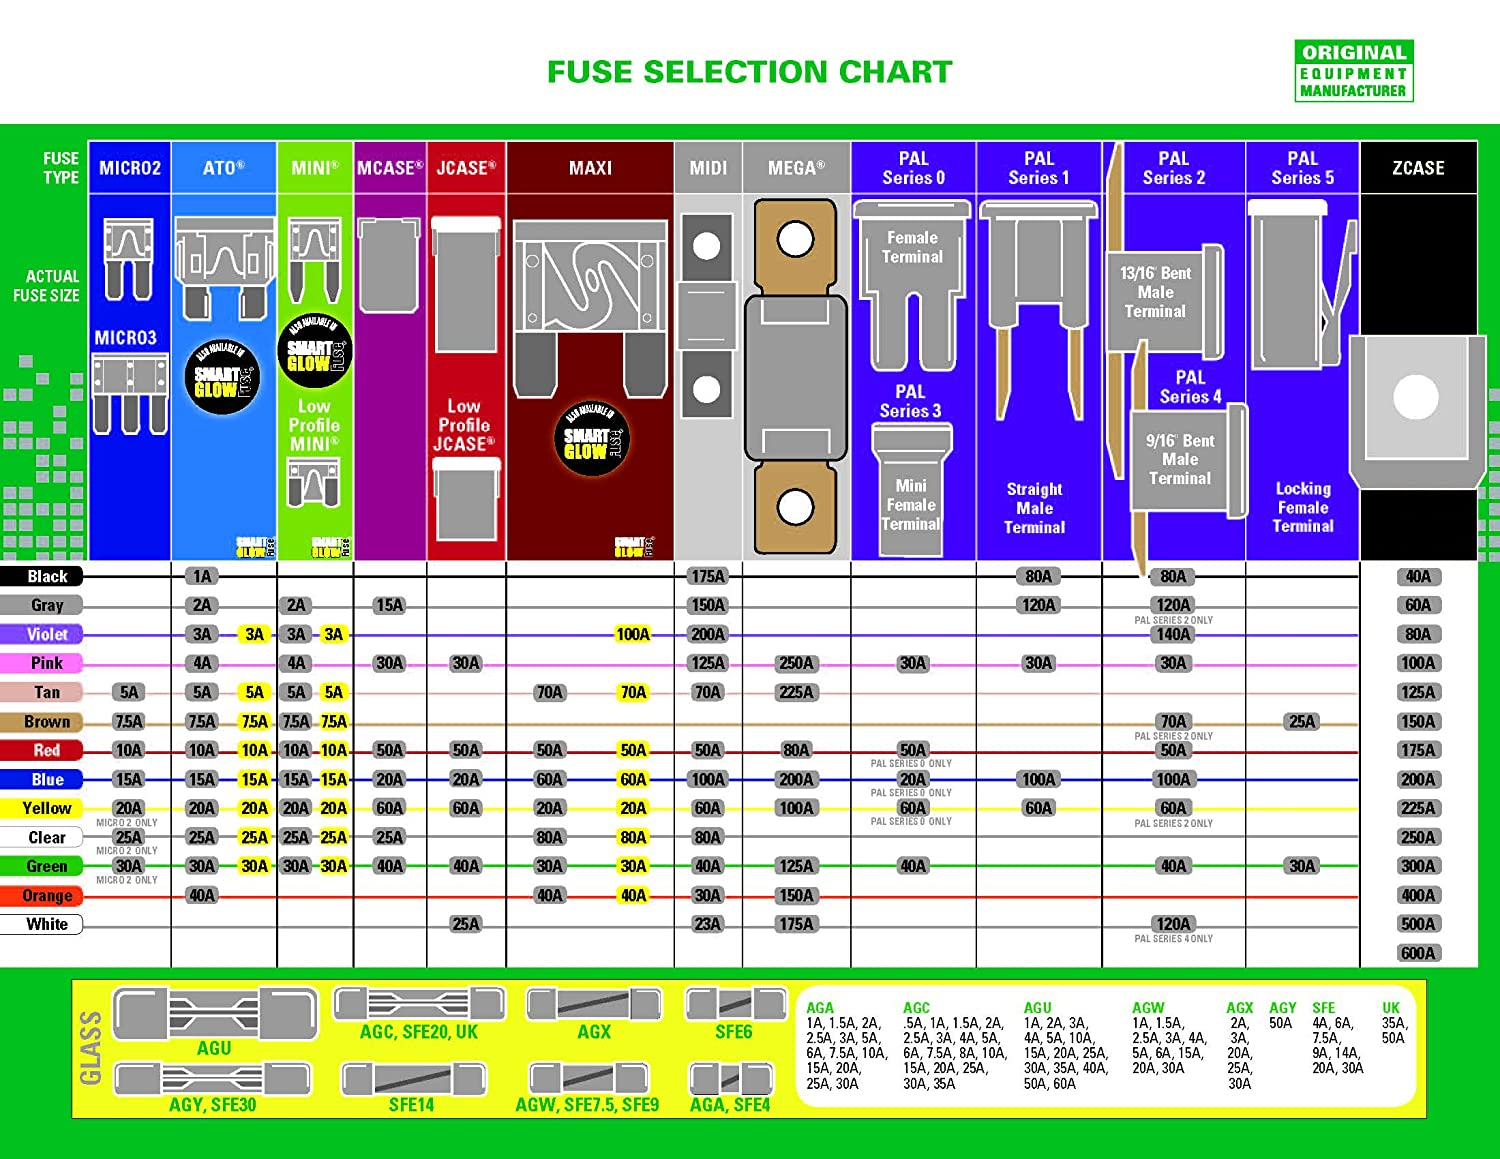 Standard electrical fuse sizes schematic wiring diagram fuse sizes chart wiring diagram u2022 rh tinyforge co dc fuse size chart fuse sizes chart greentooth Gallery